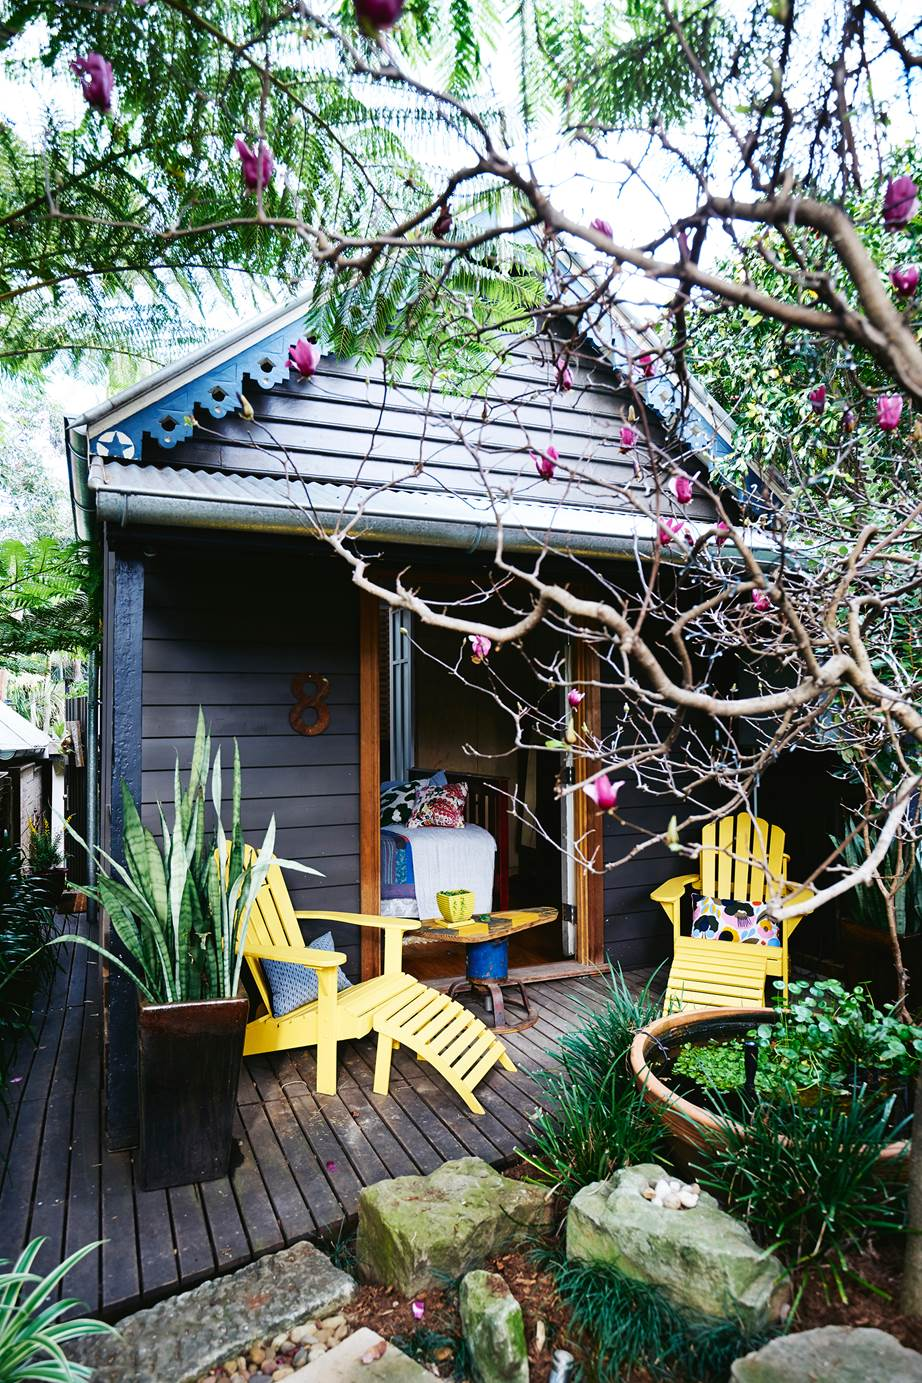 Upcycled-Treehouse-by-Terry-Bail-3.jpg